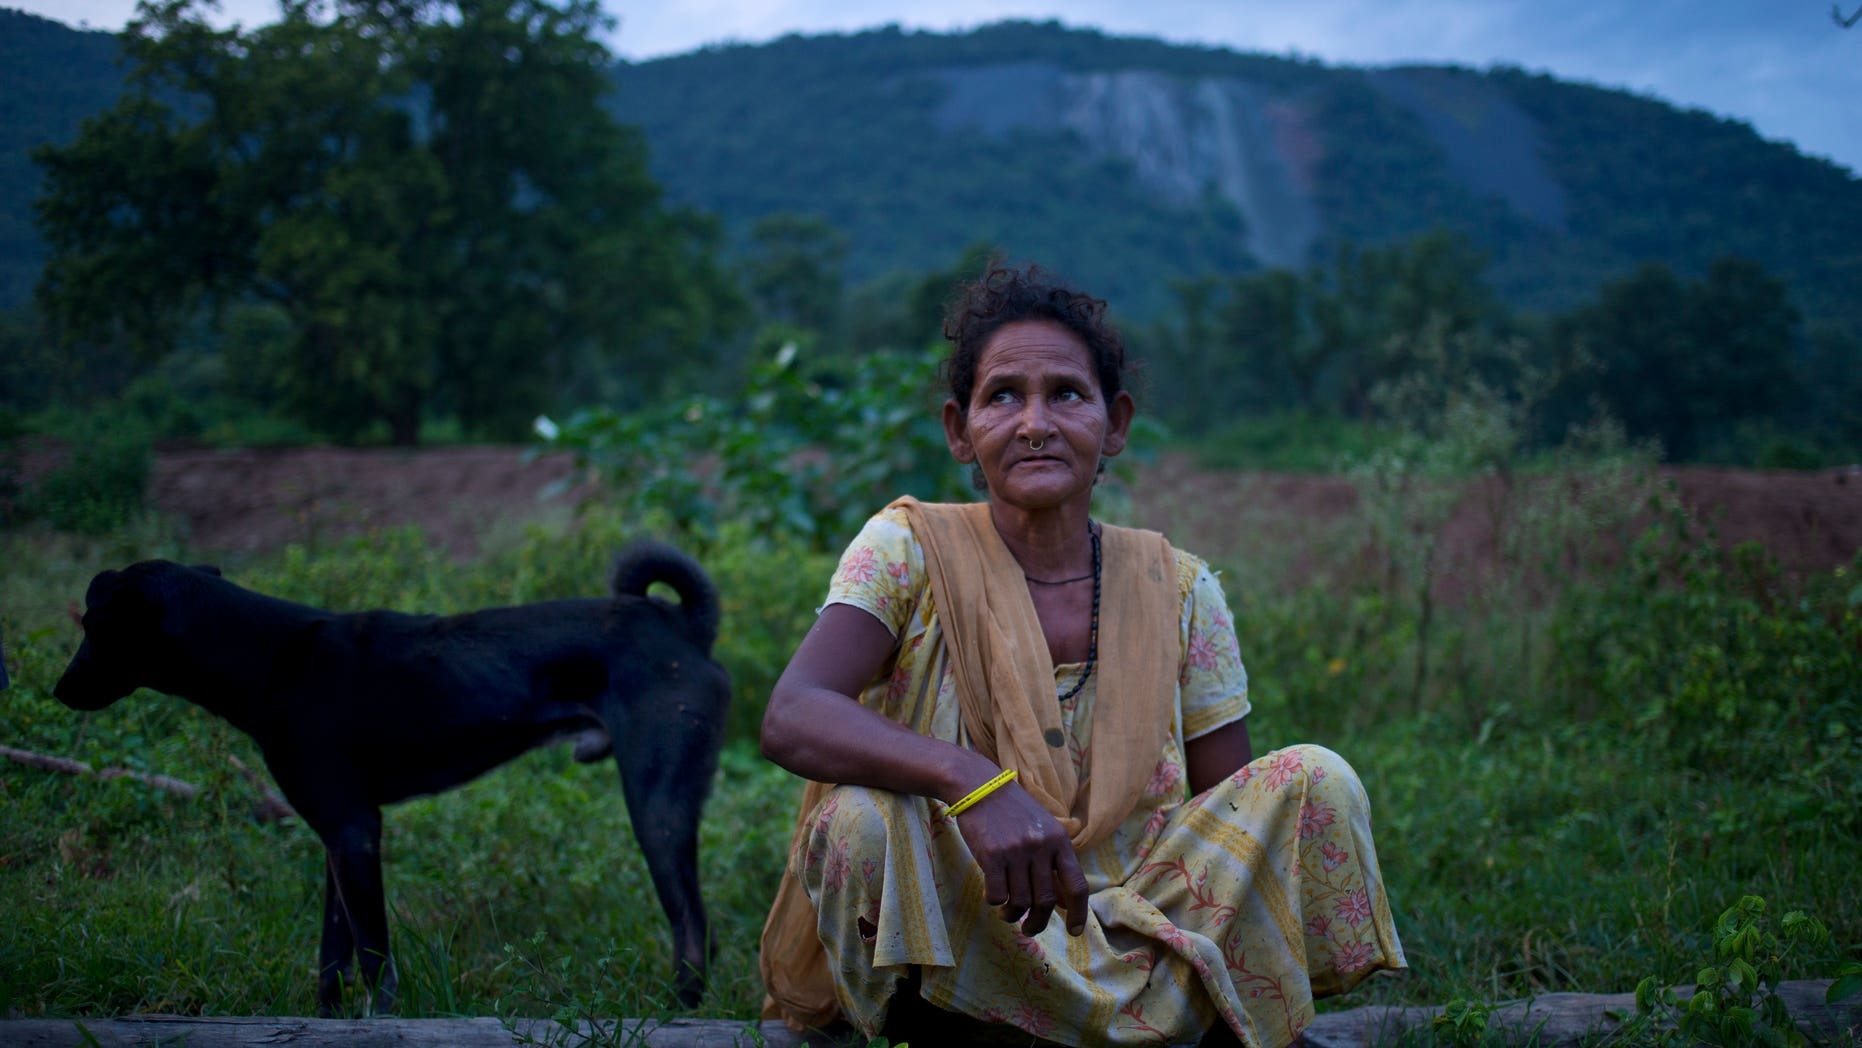 In this Sept. 11, 2014 photo, Jema Sundi sits outside her home in barren hills where asbestos waste was dumped is visible in the background in Roro, India.  (AP Photo/Saurabh Das)